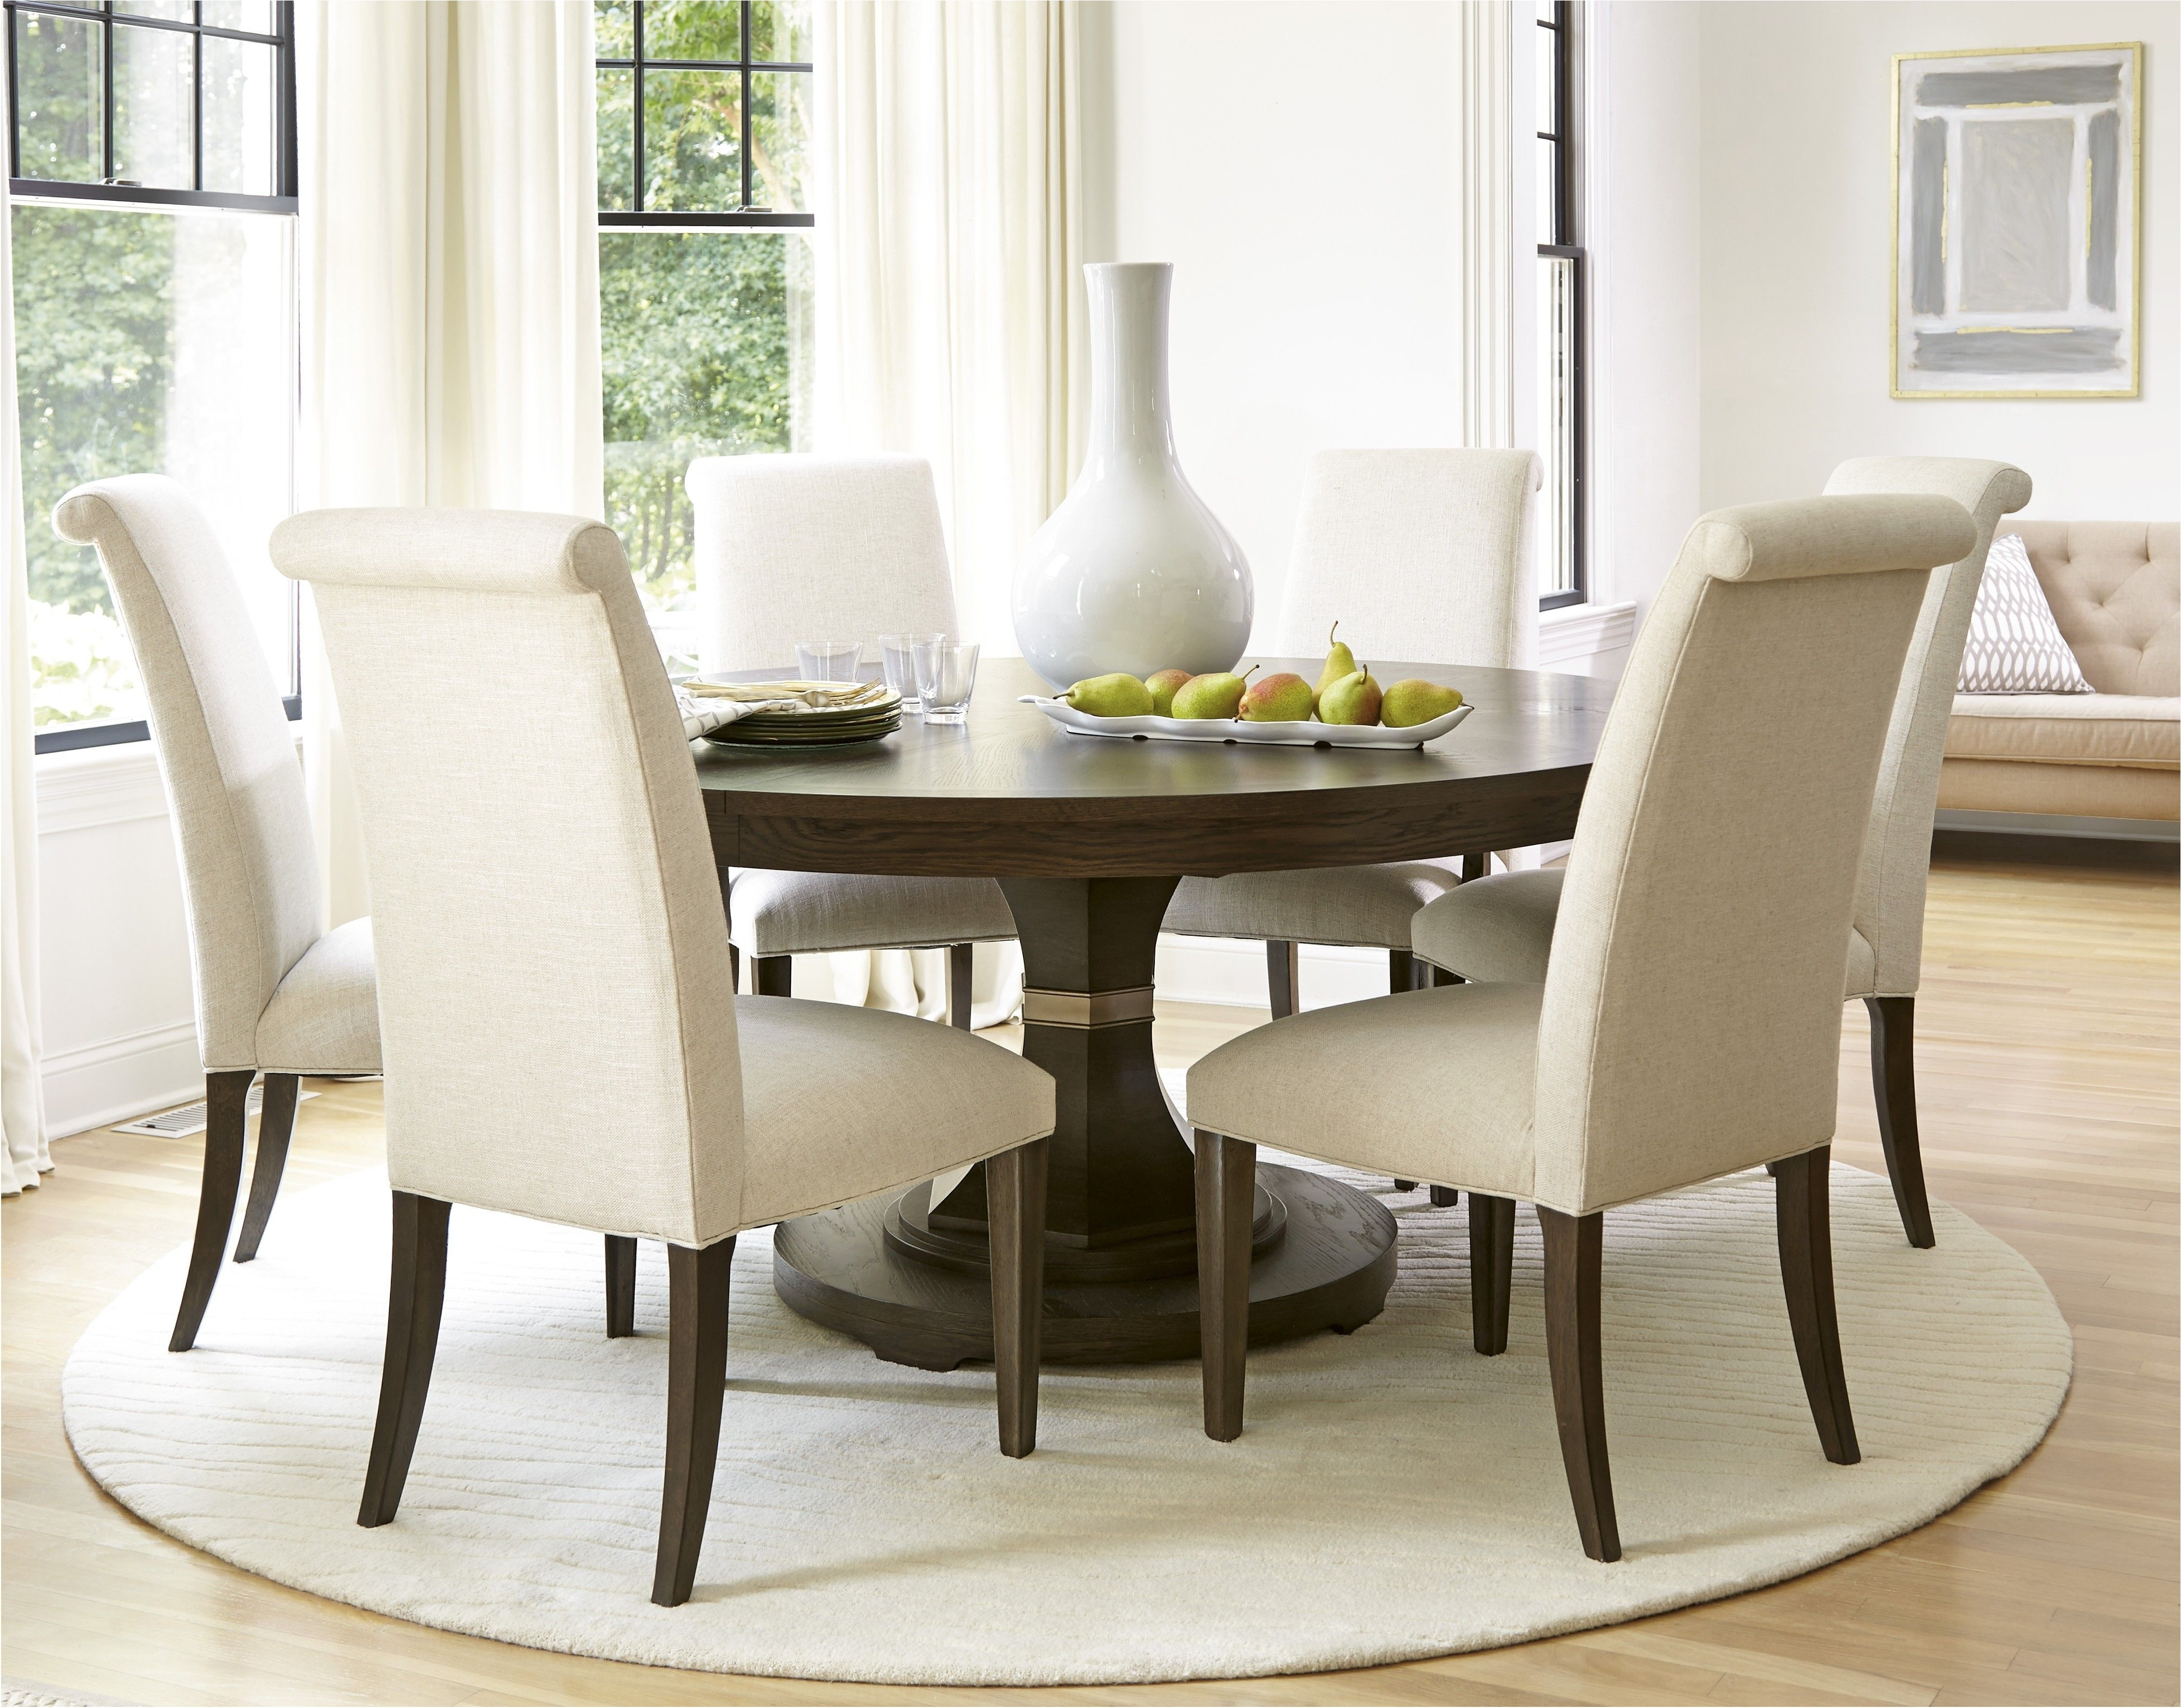 Most Current Extraordinary Dining Room Furniture Glass Round Kitchen Table Decor Intended For Small Round Dining Table With 4 Chairs (View 14 of 25)